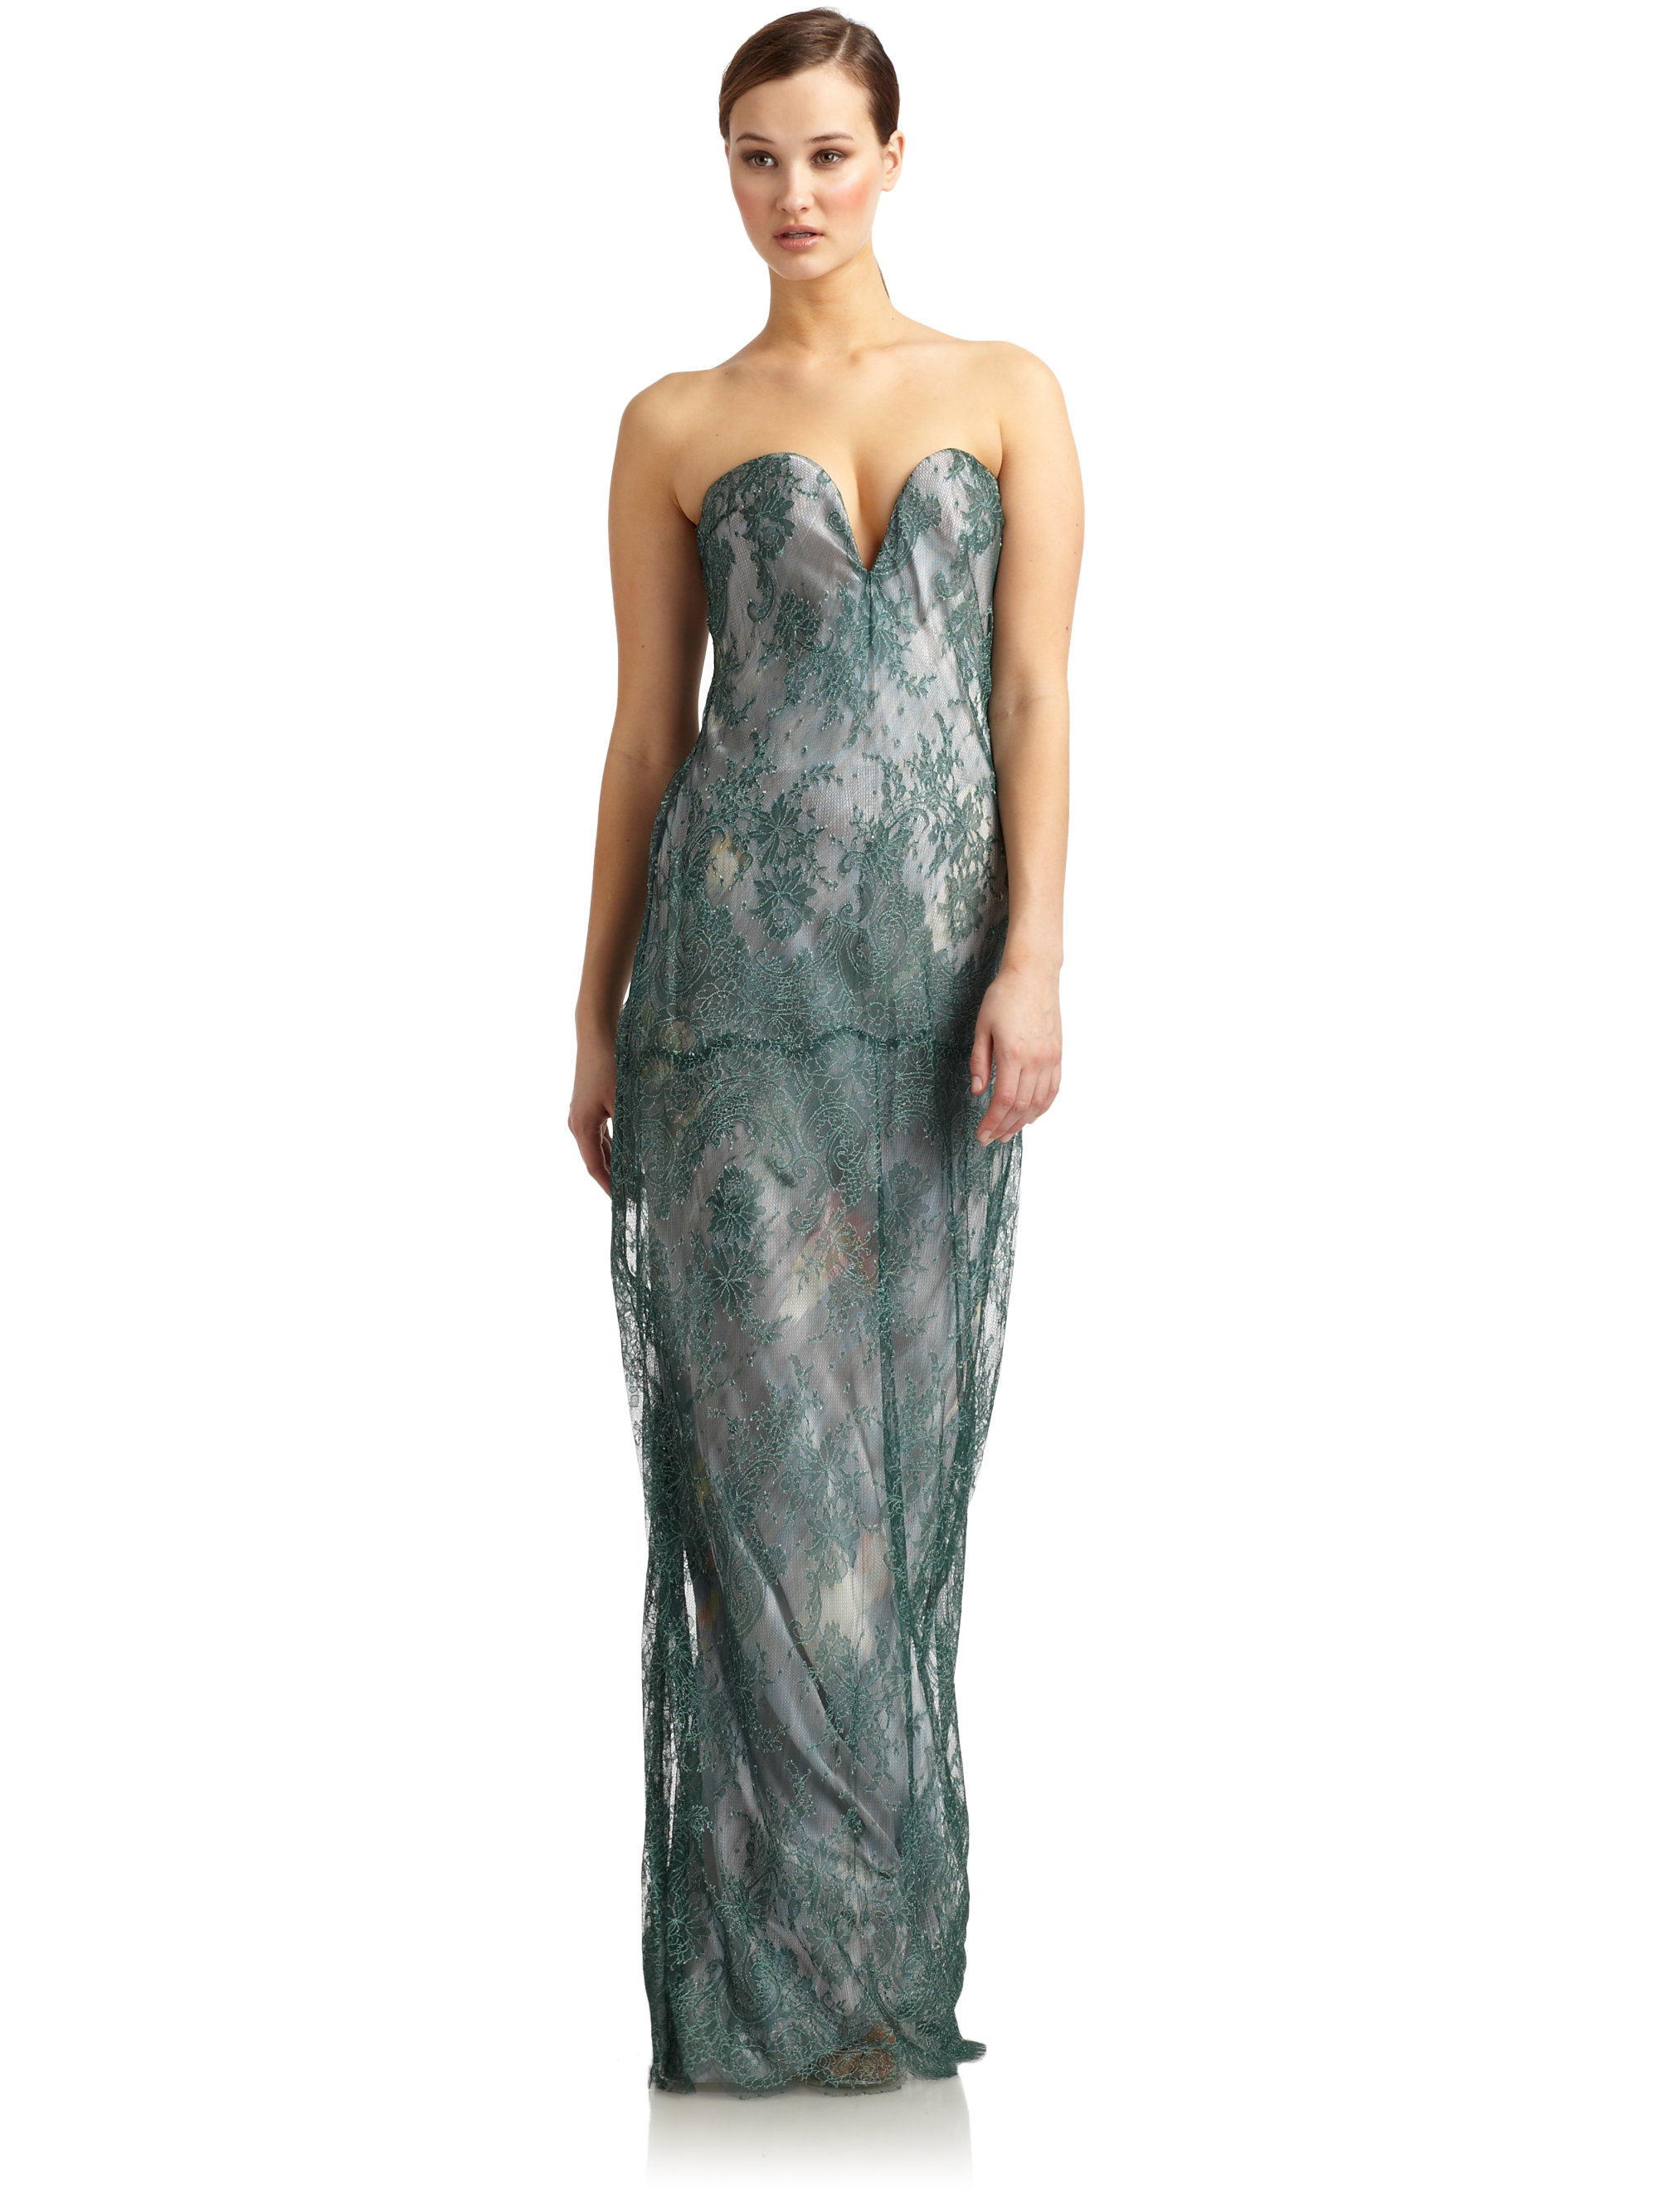 Lyst - Giorgio armani Floral Lace Strapless Gown in Green